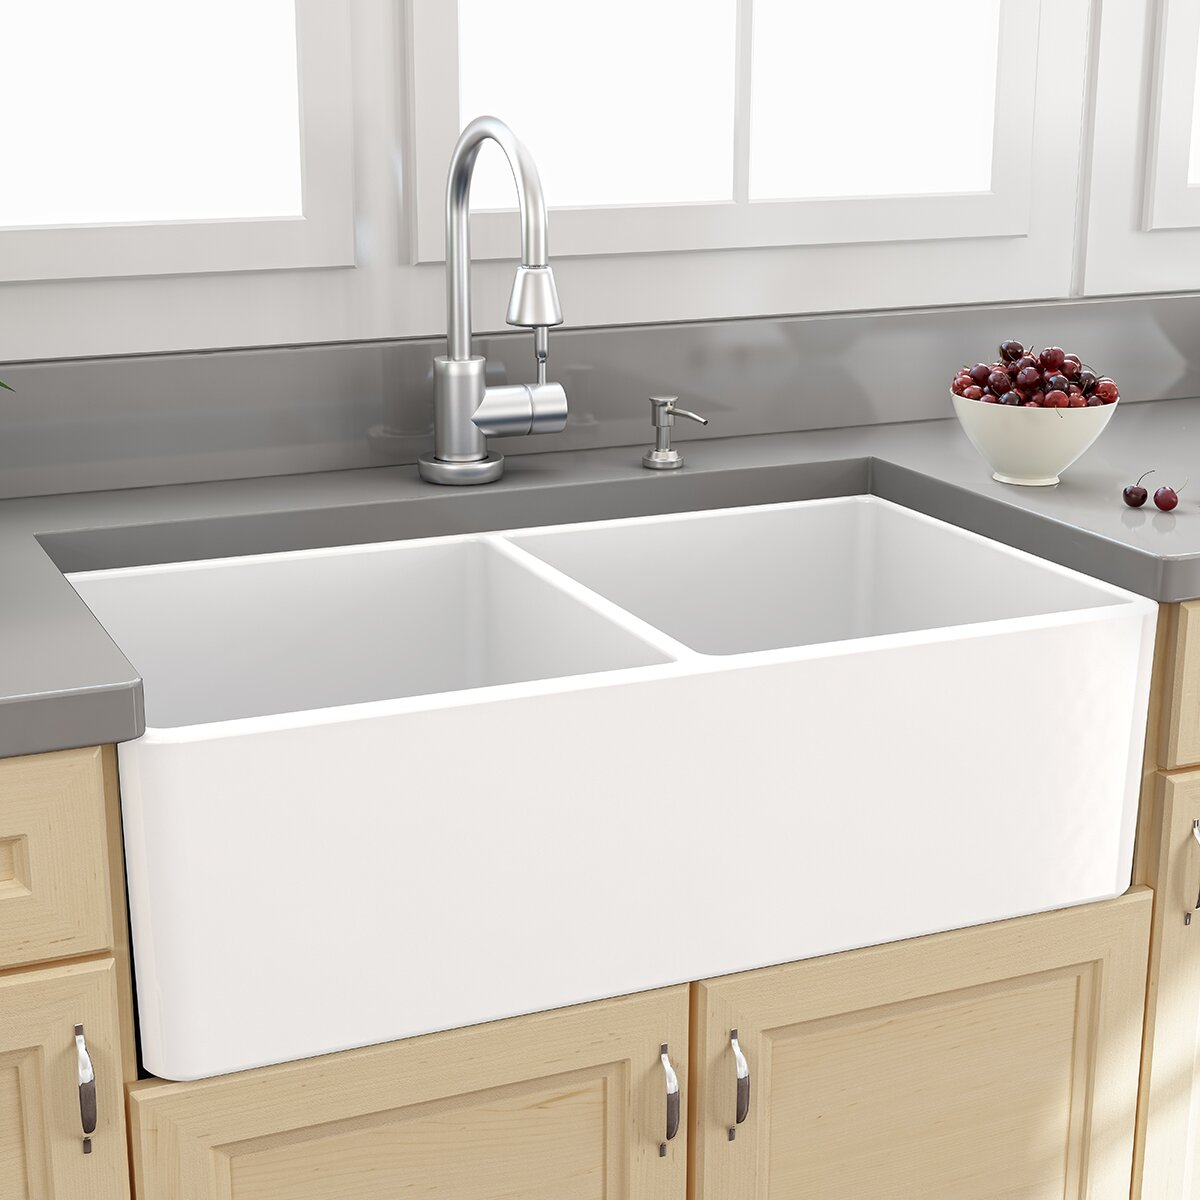 Nantucket Sinks Farmhouse 33 X 18 Double Bowl Kitchen